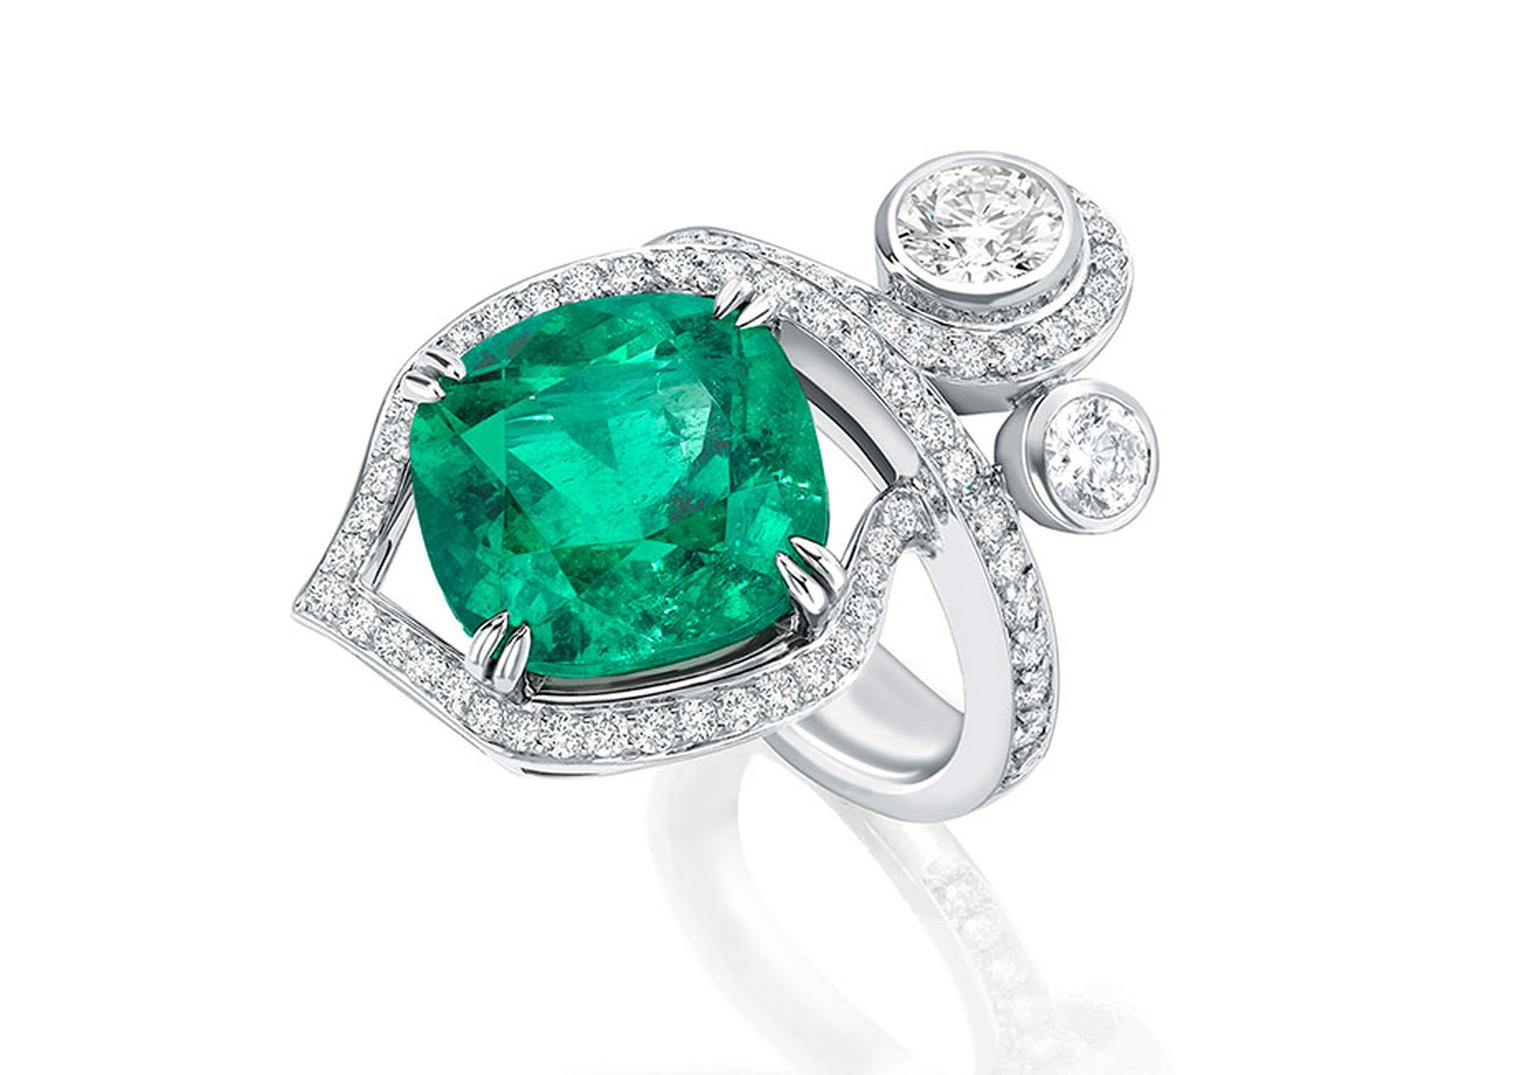 Boodles' Greenfire emerald ring, part of the Greenfire suite, features a single emerald surrounded by pavé diamonds and two brilliant-cut diamonds designed to appear as entwined forest foliage